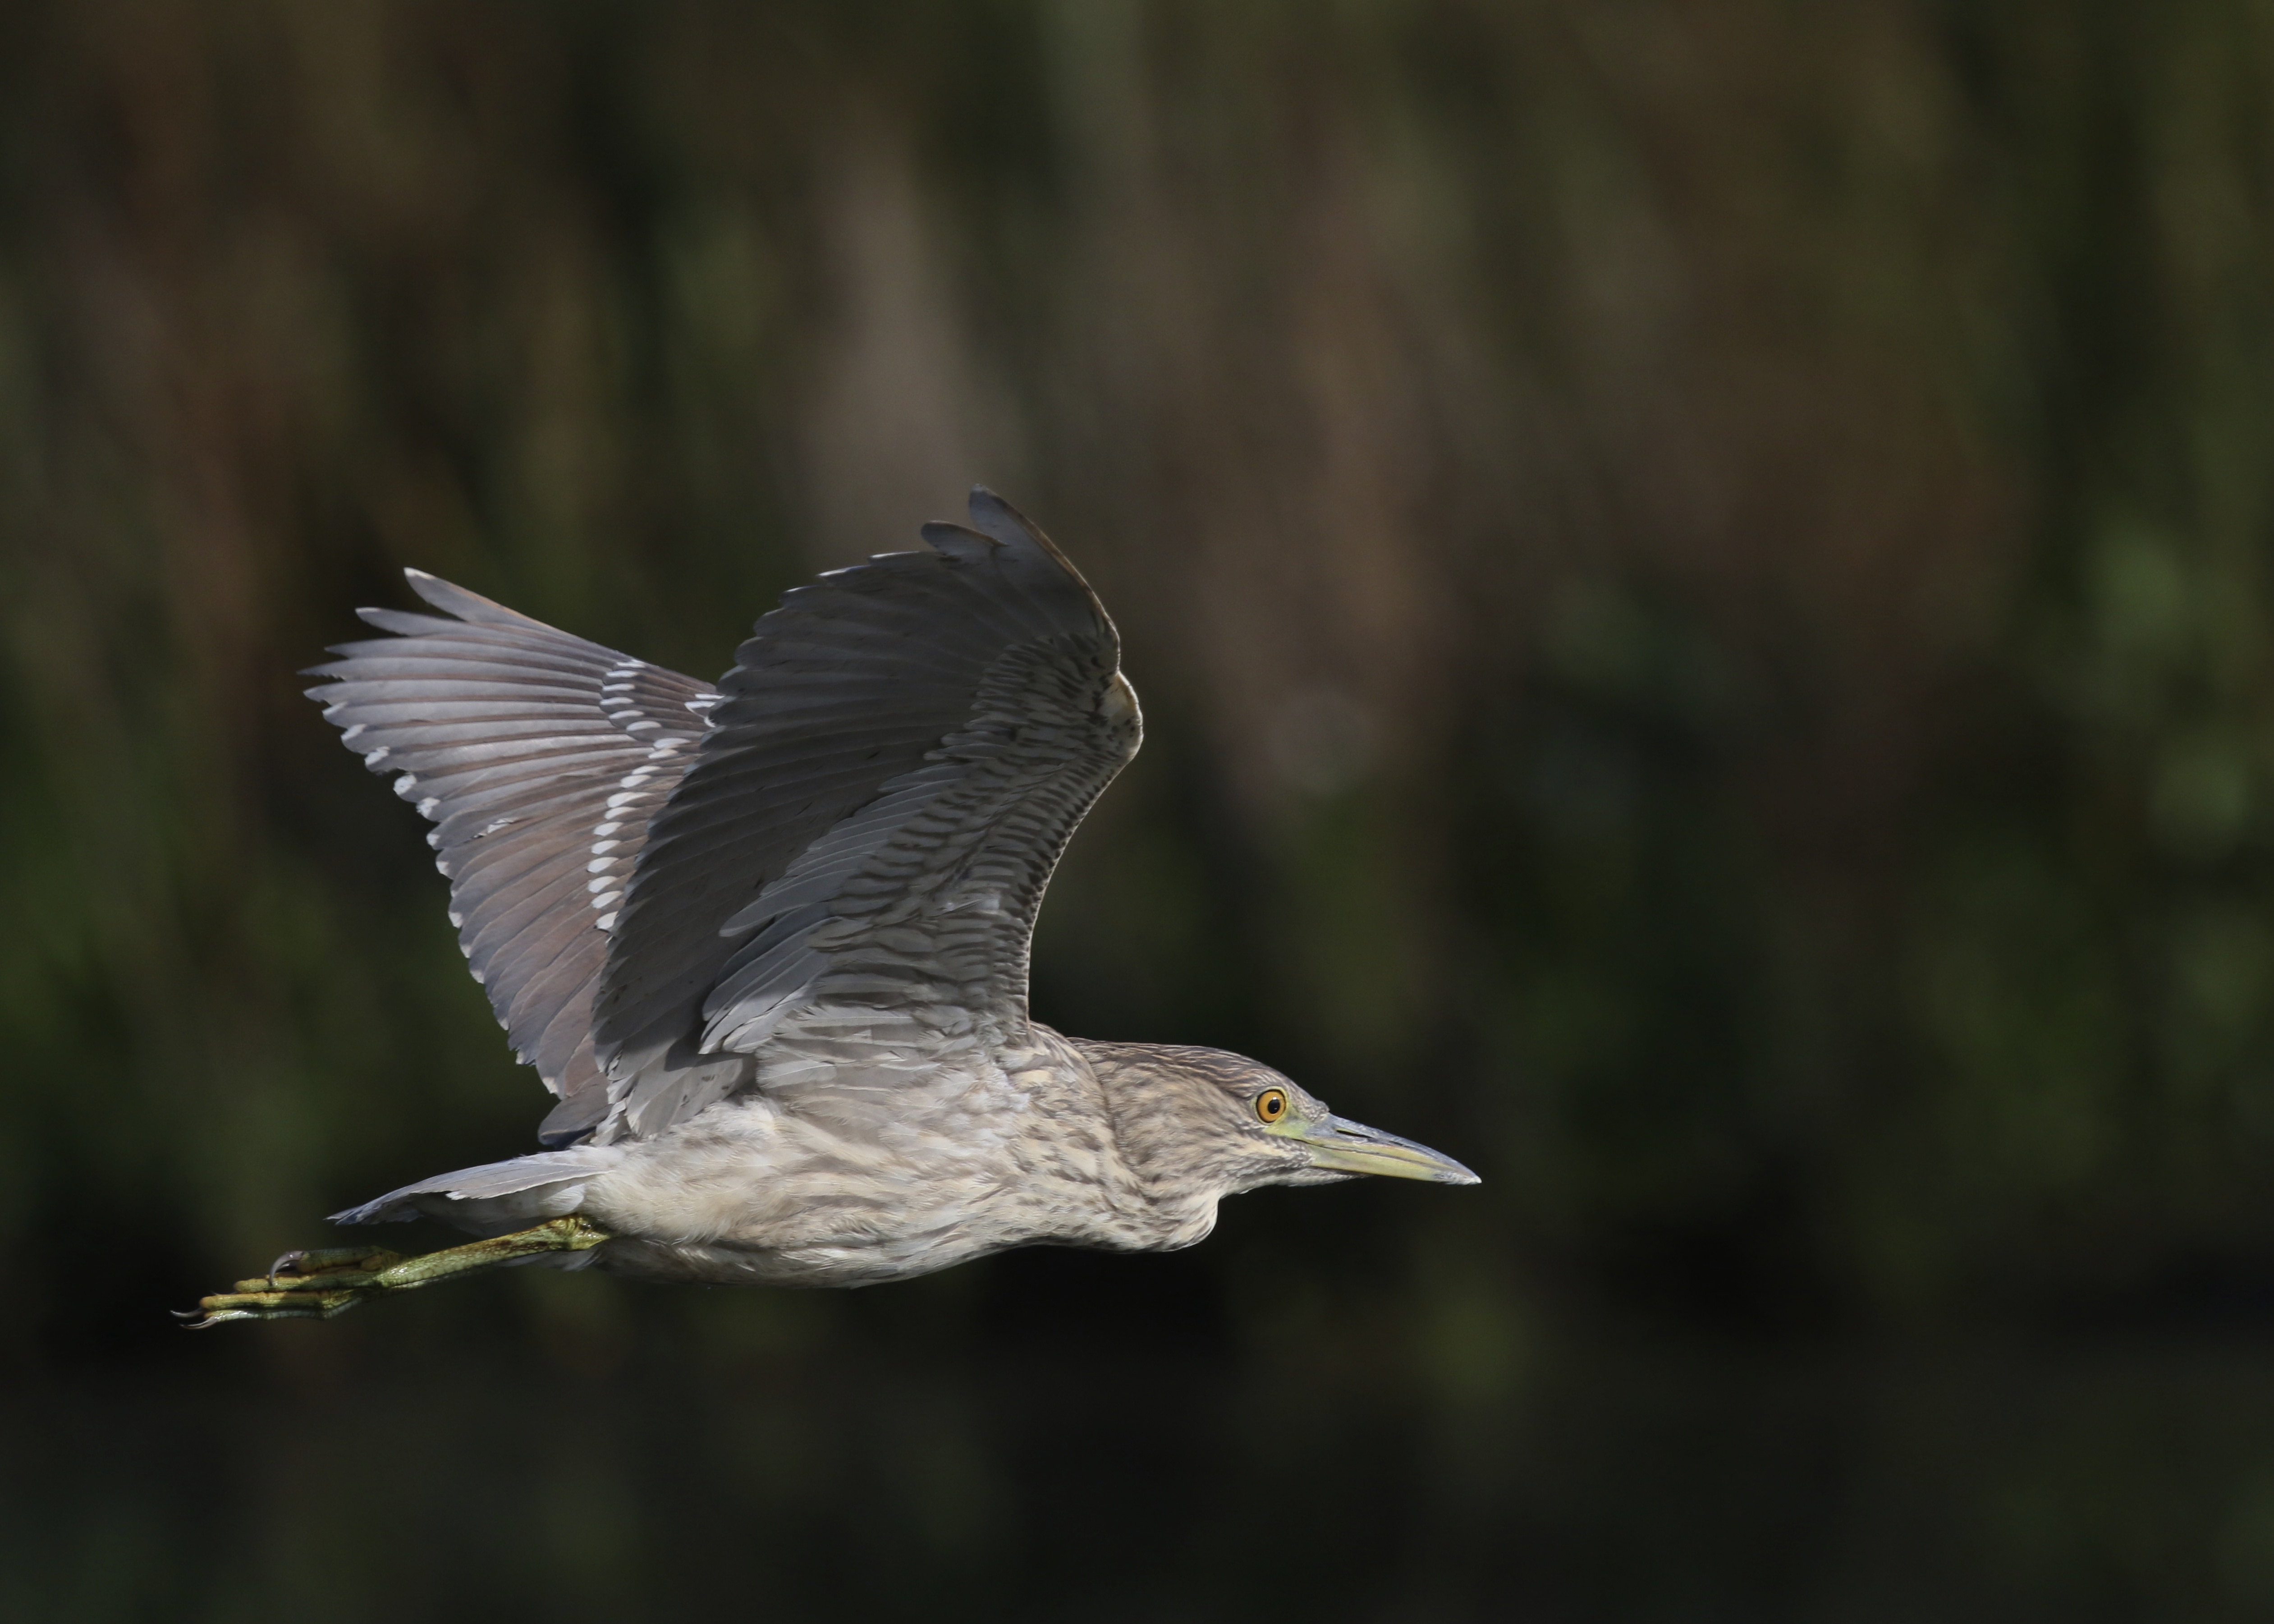 Black-crowned Night-Heron in flight. One of four located at the Wallkill River National Wildlife Refuge, 8/29/14.